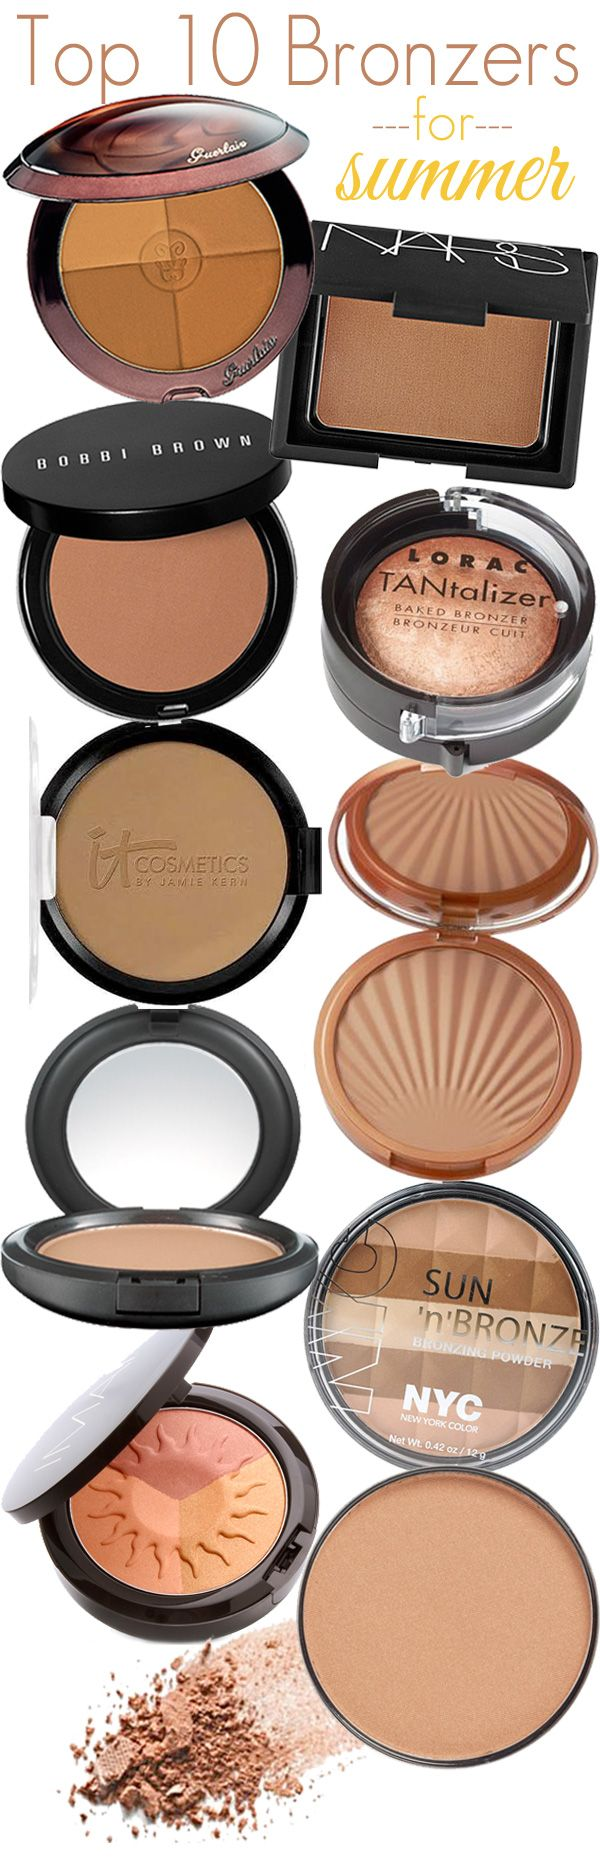 Just a few brushes of bronzer swept across your skin and your entire look can be changed your ent...